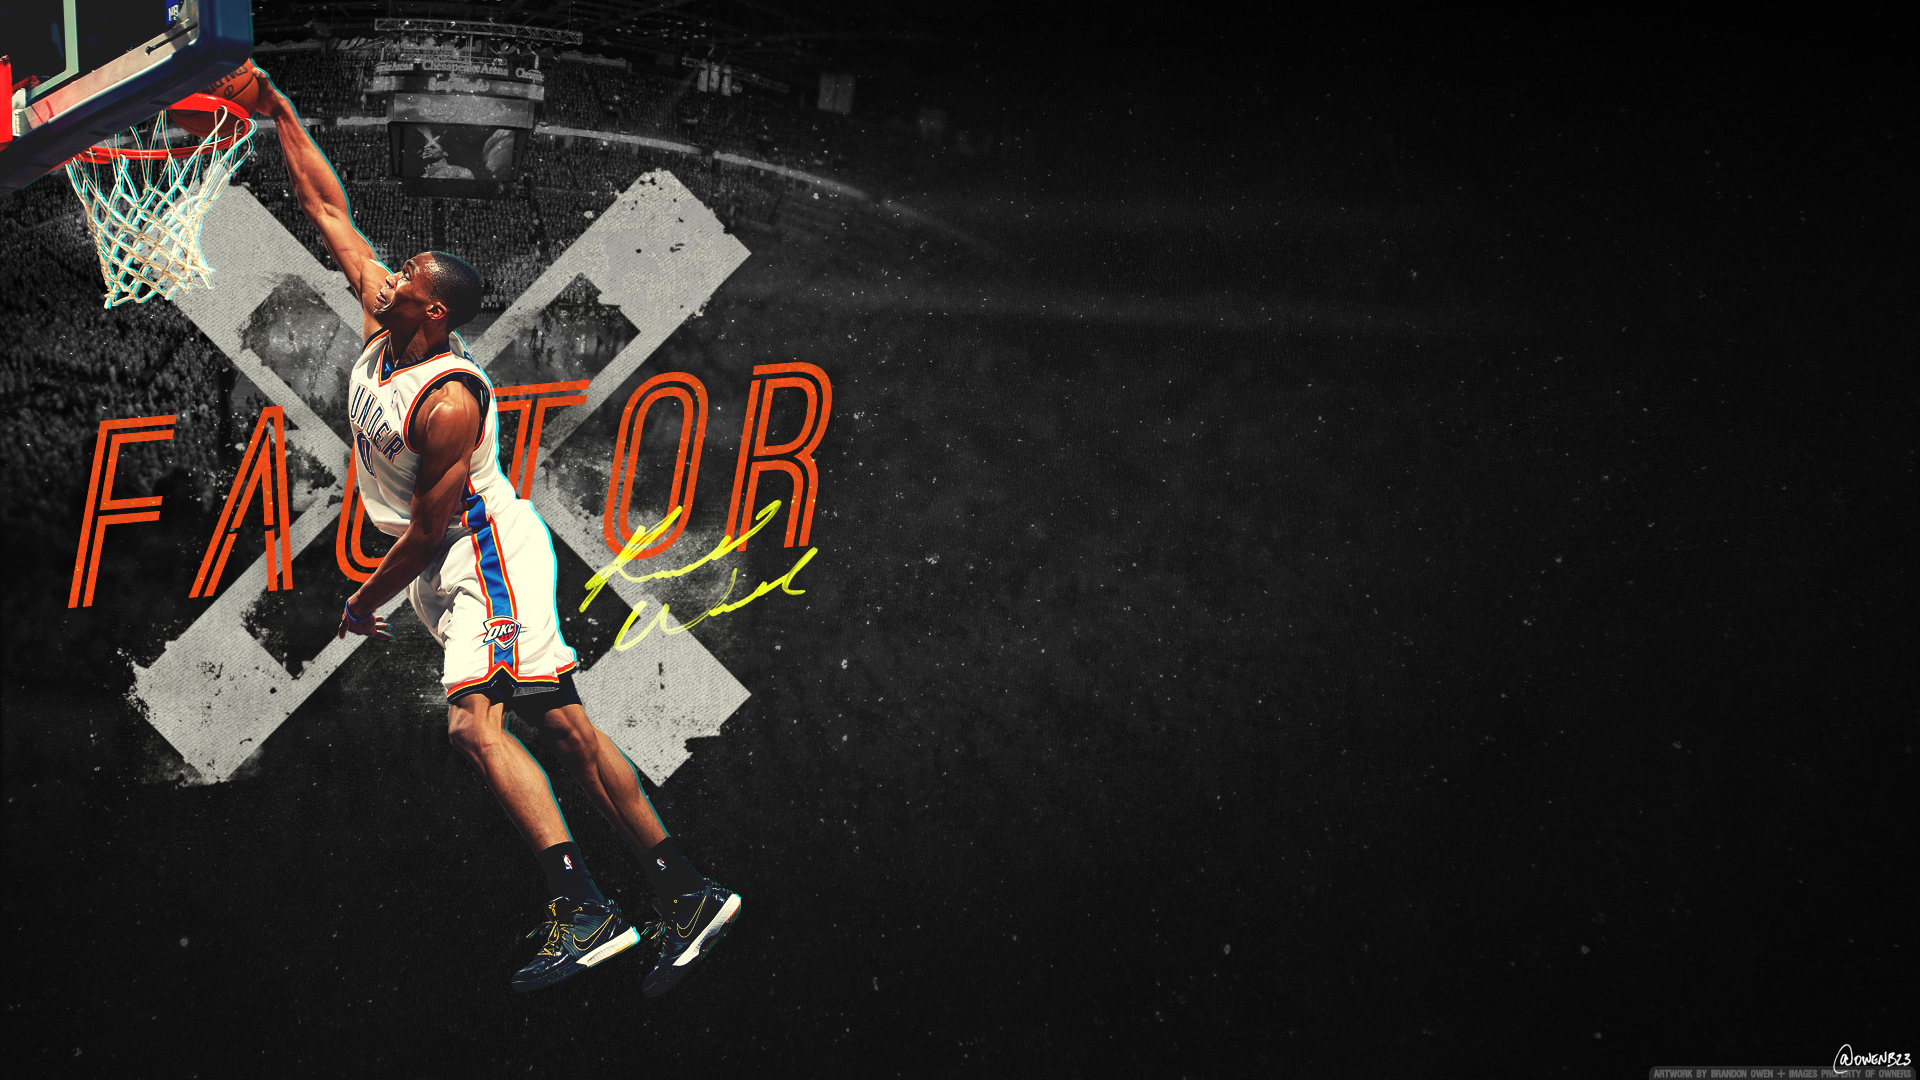 Russell westbrook wallpaper iphone wallpapersafari - Go Back Images For Russell Westbrook Dunk Wallpaper